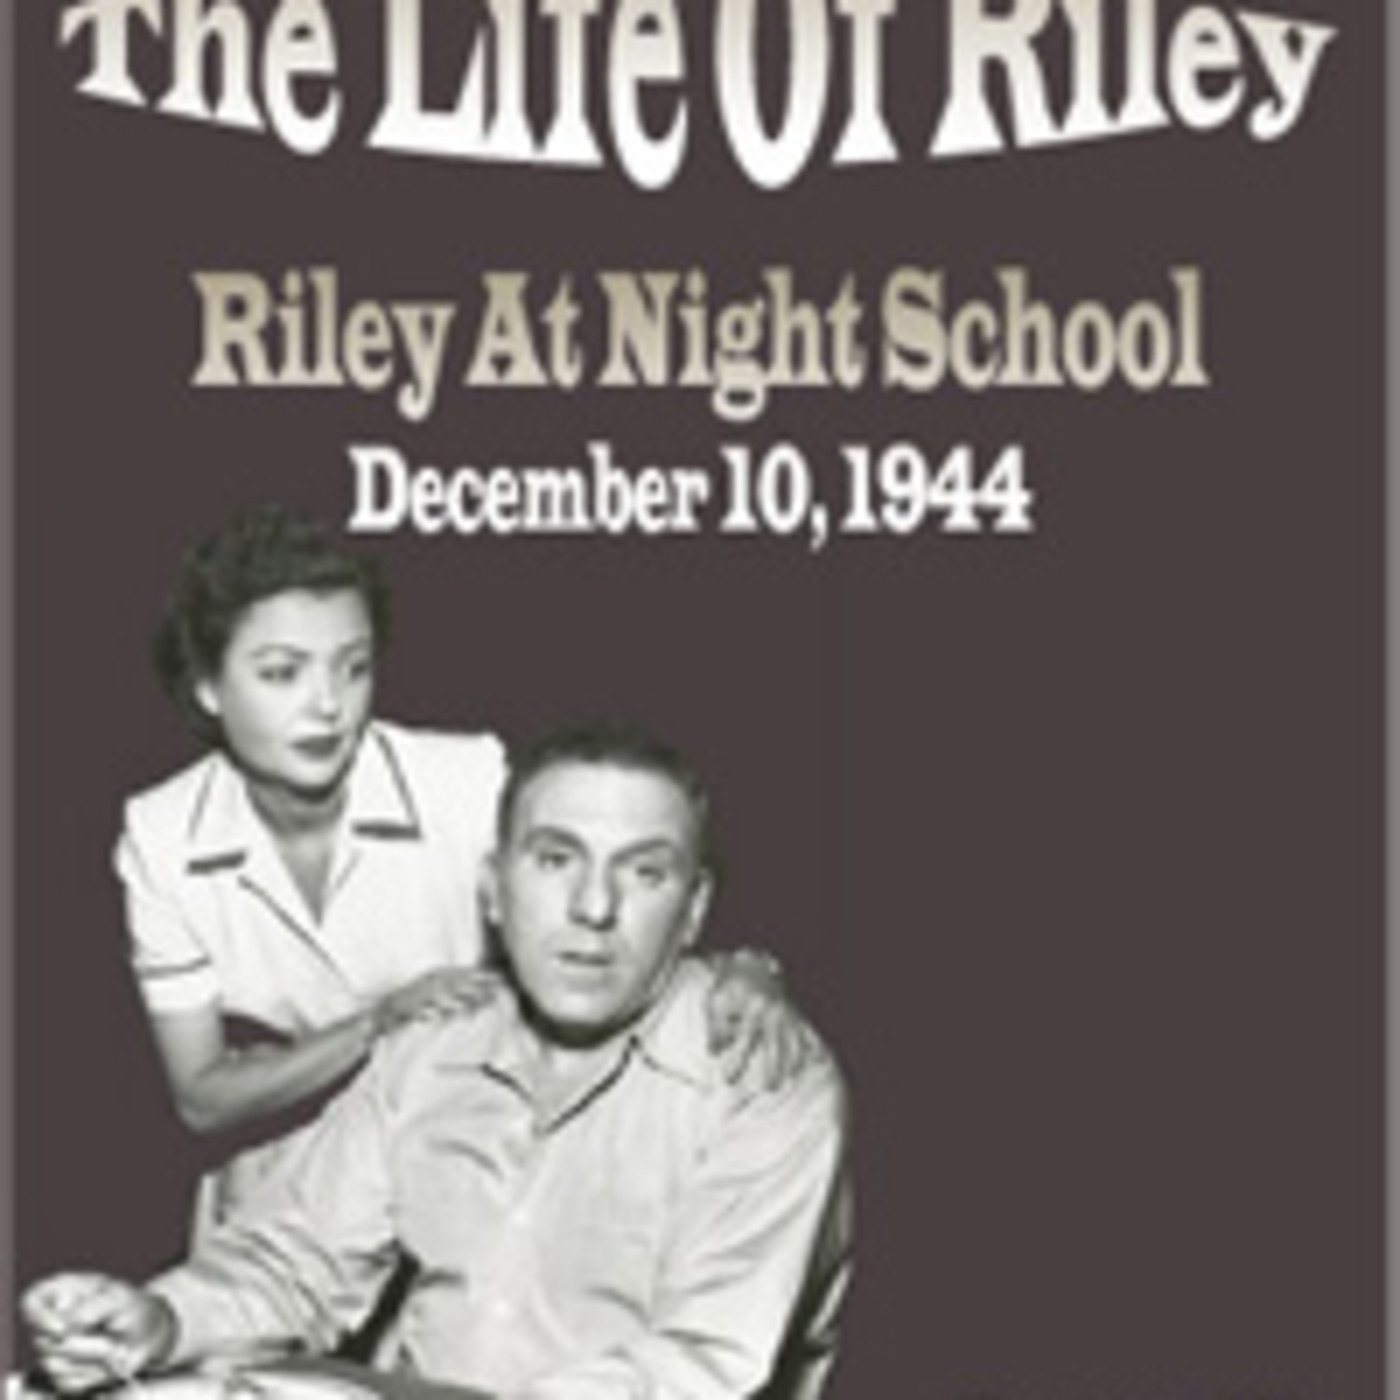 The Life Of Riley - Riley At Night School (12-10-44)